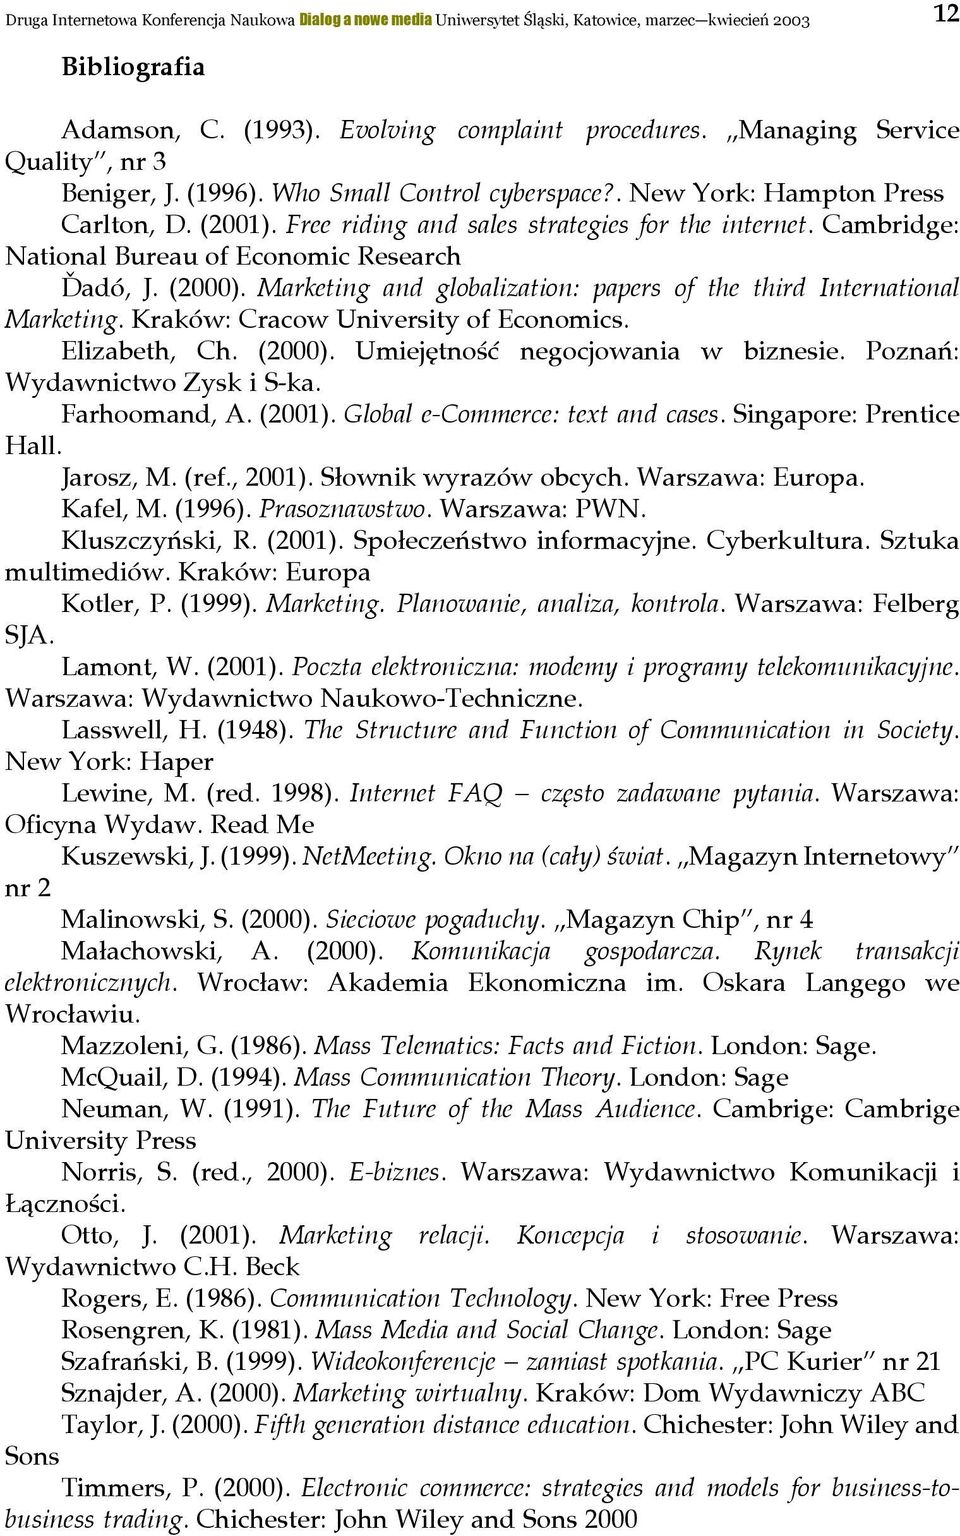 Cambridge: National Bureau of Economic Research Ďadó, J. (2000). Marketing and globalization: papers of the third International Marketing. Kraków: Cracow University of Economics. Elizabeth, Ch.